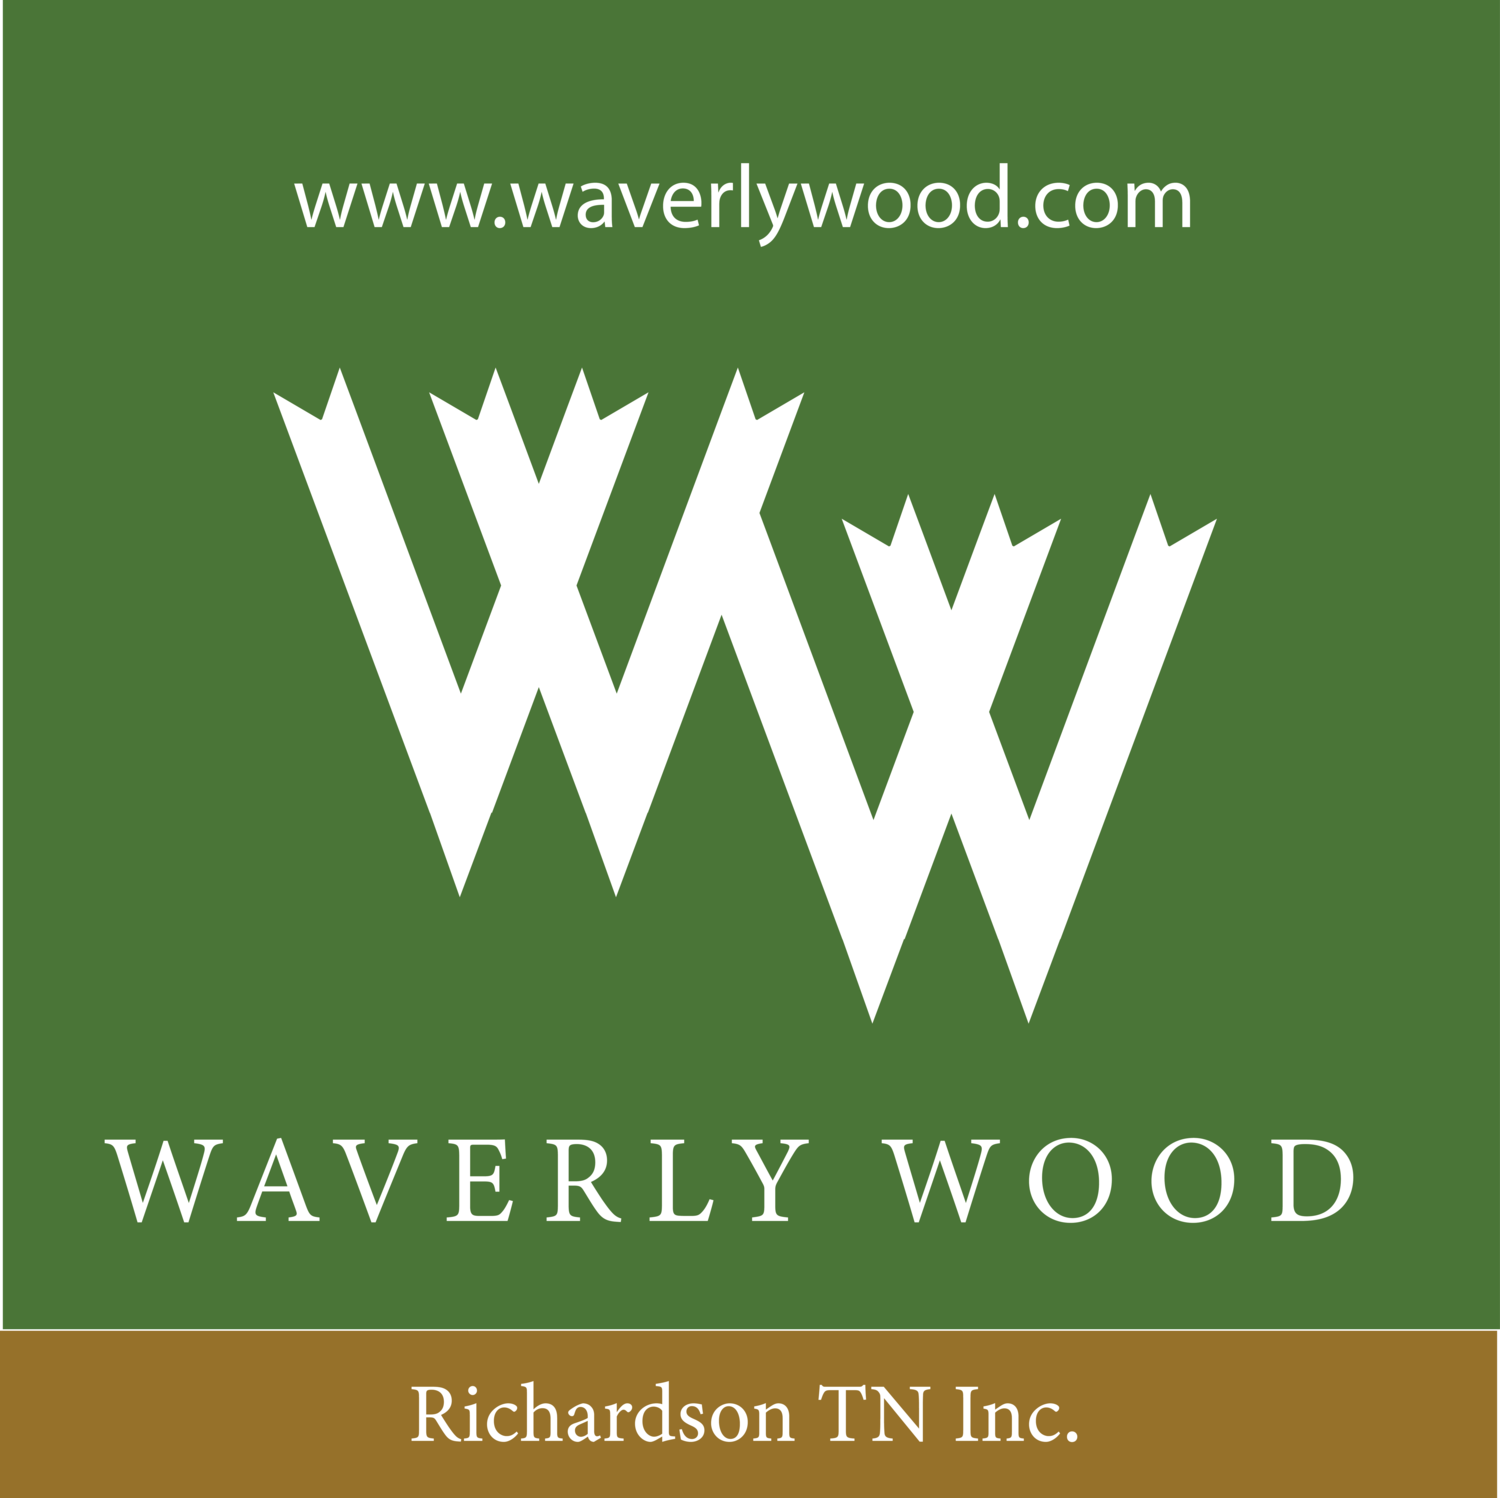 Waverly Wood